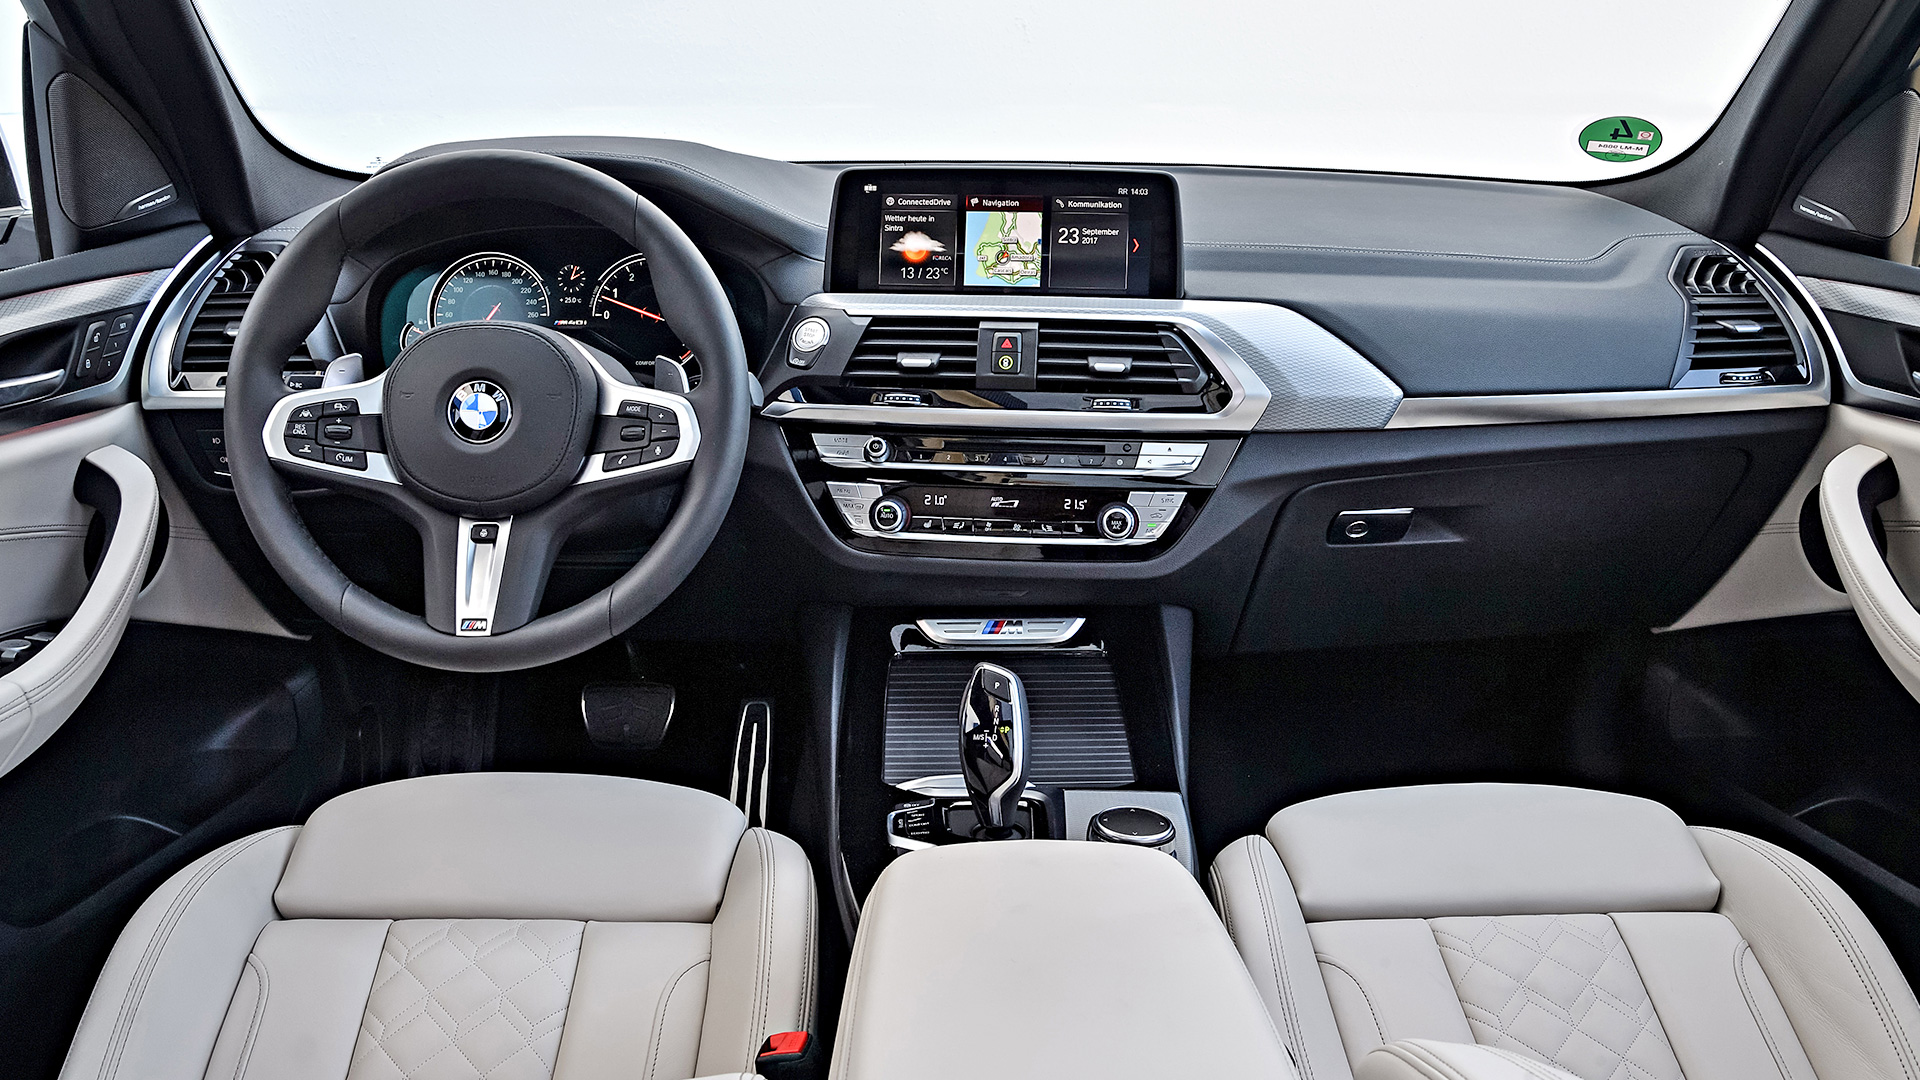 Bmw X3 2018 M40i Interior Car Photos Overdrive